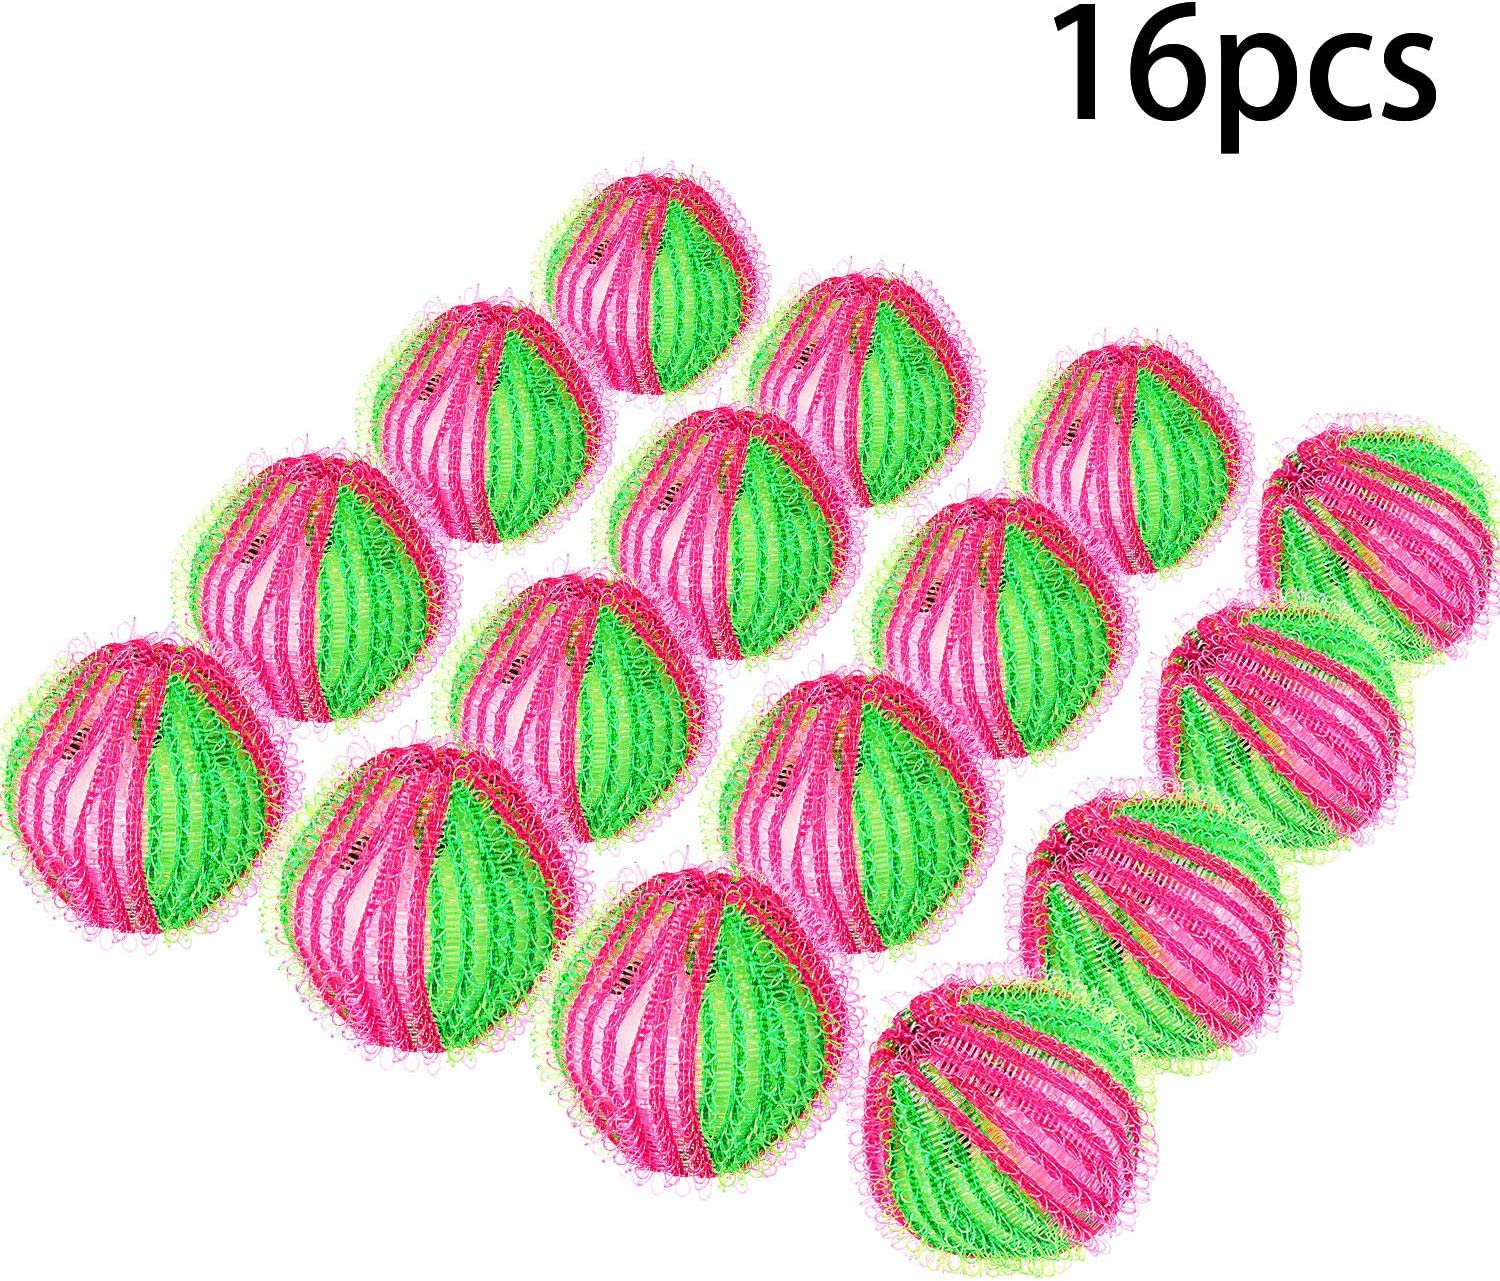 16 Pack Washing Ball Lint Remover Balls Laundry Wash Balls Magic Hair Removal Plastic Laundry Ball to Save Drying Time